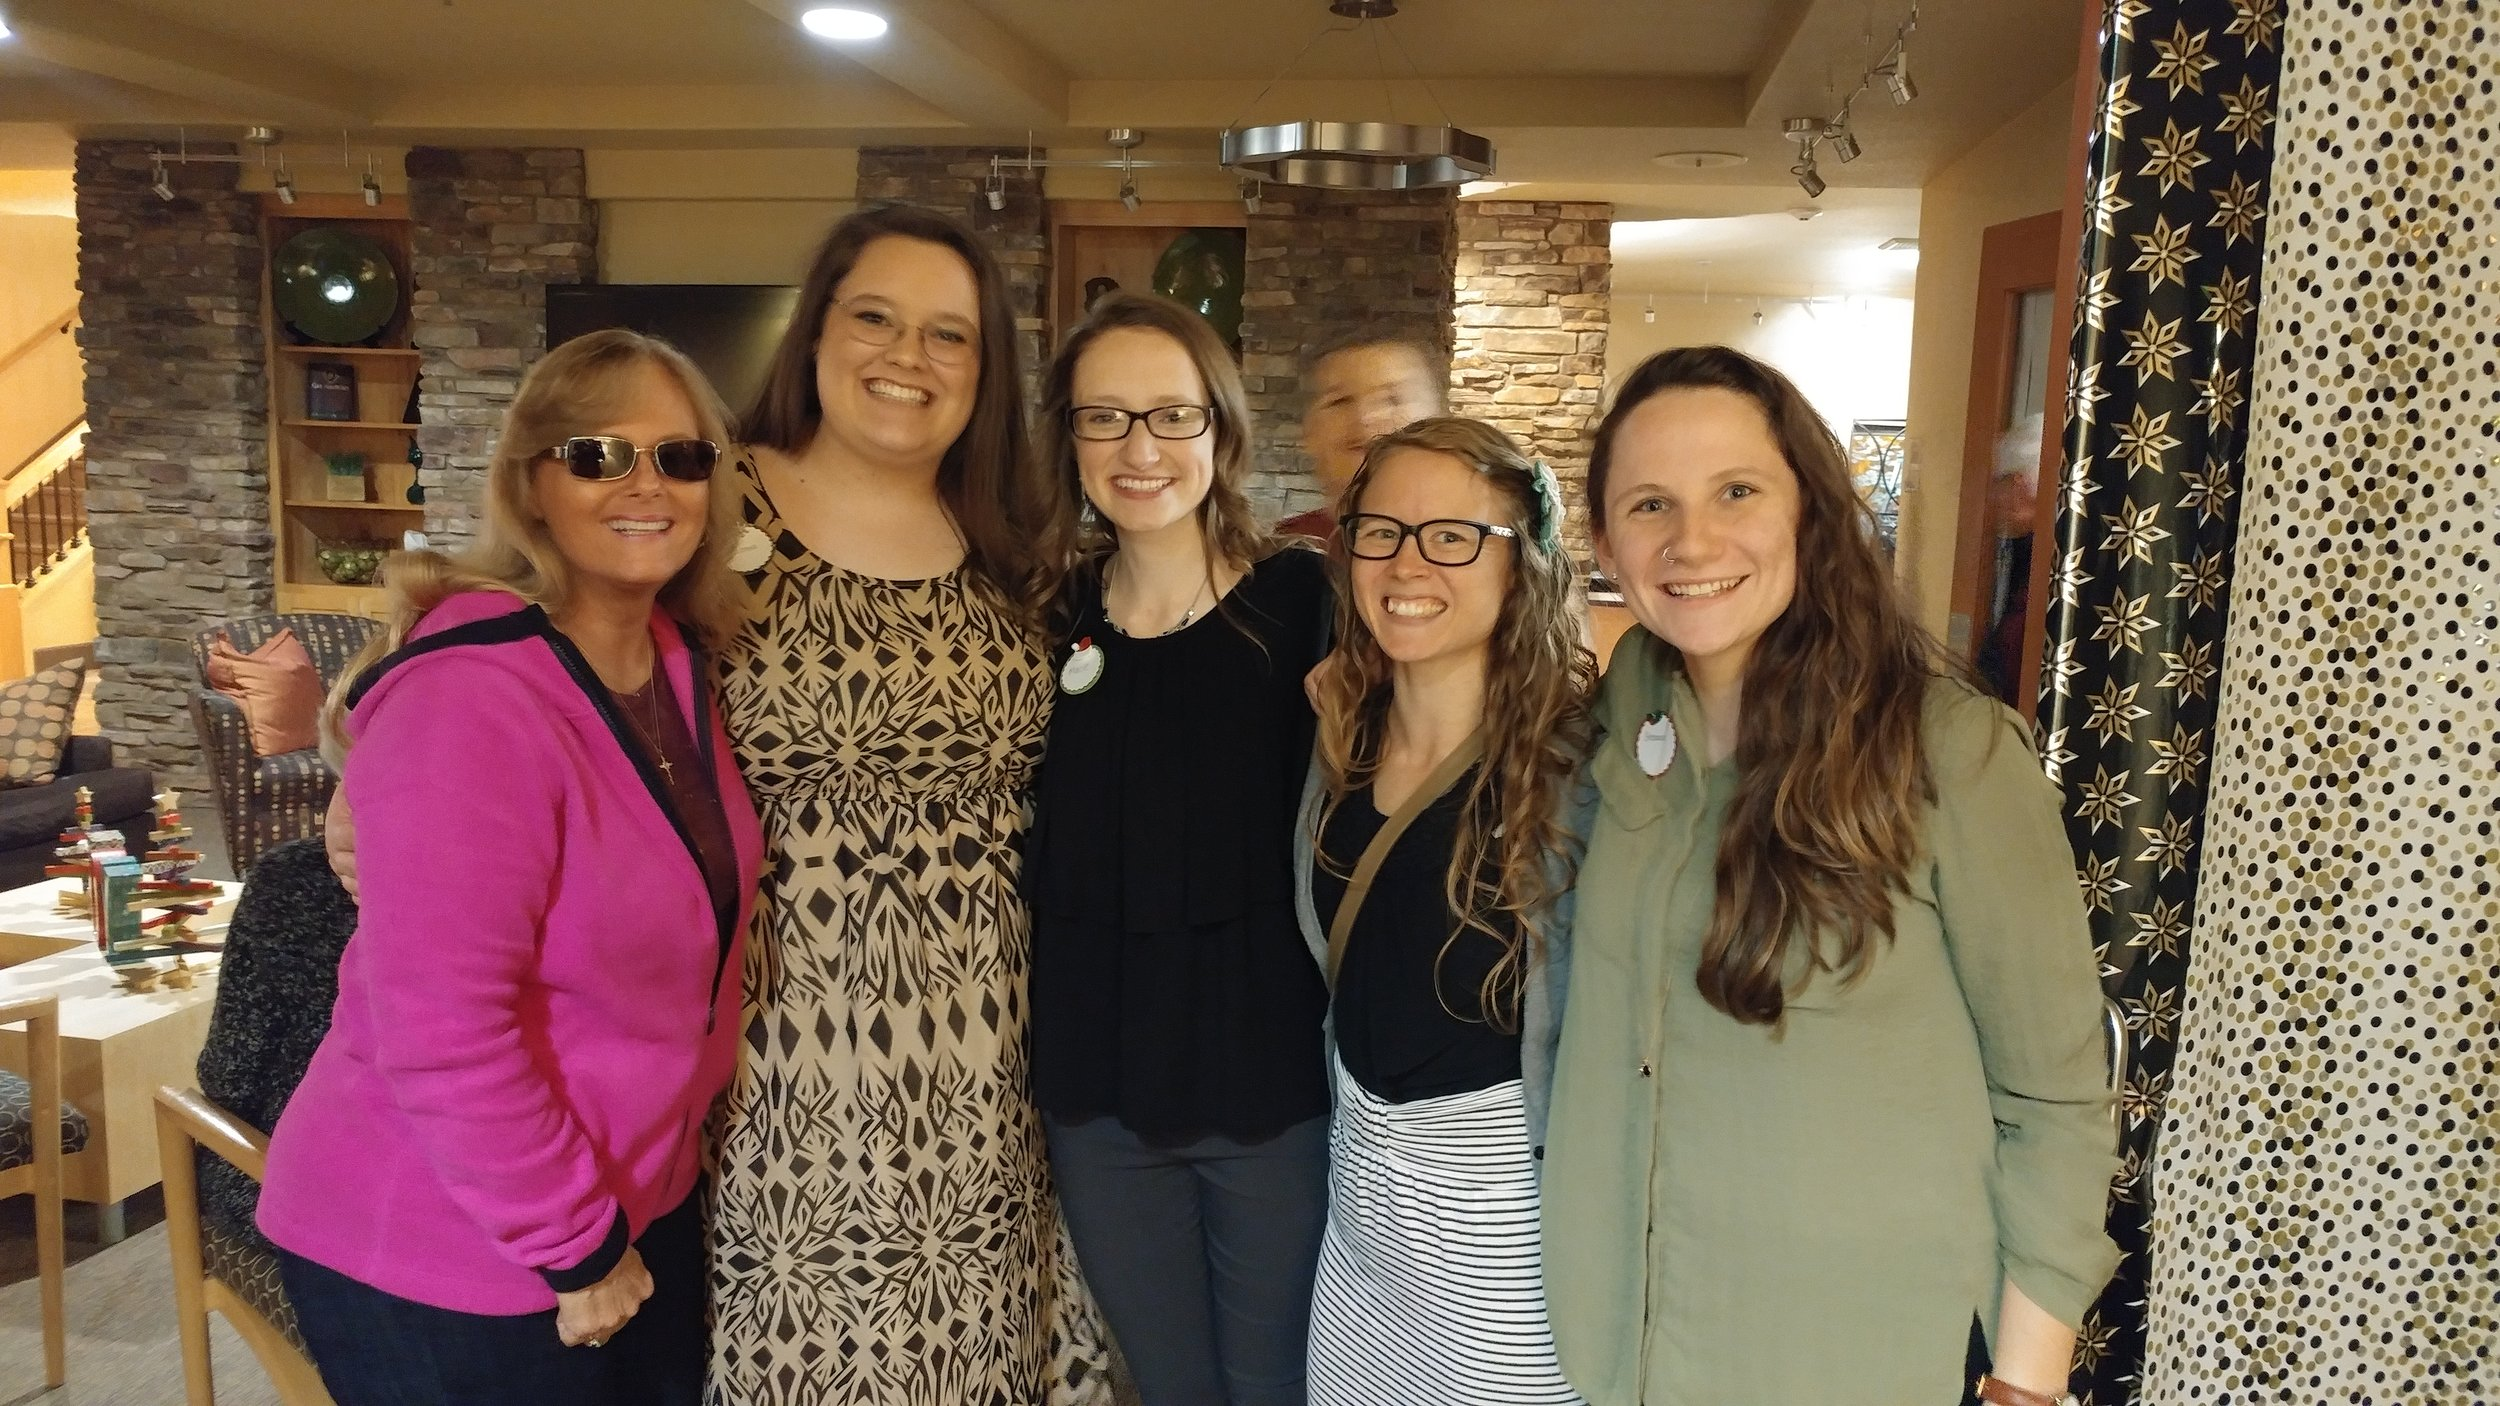 My mama and me, along with some of the amazing ladies from Mercy Multiplied.